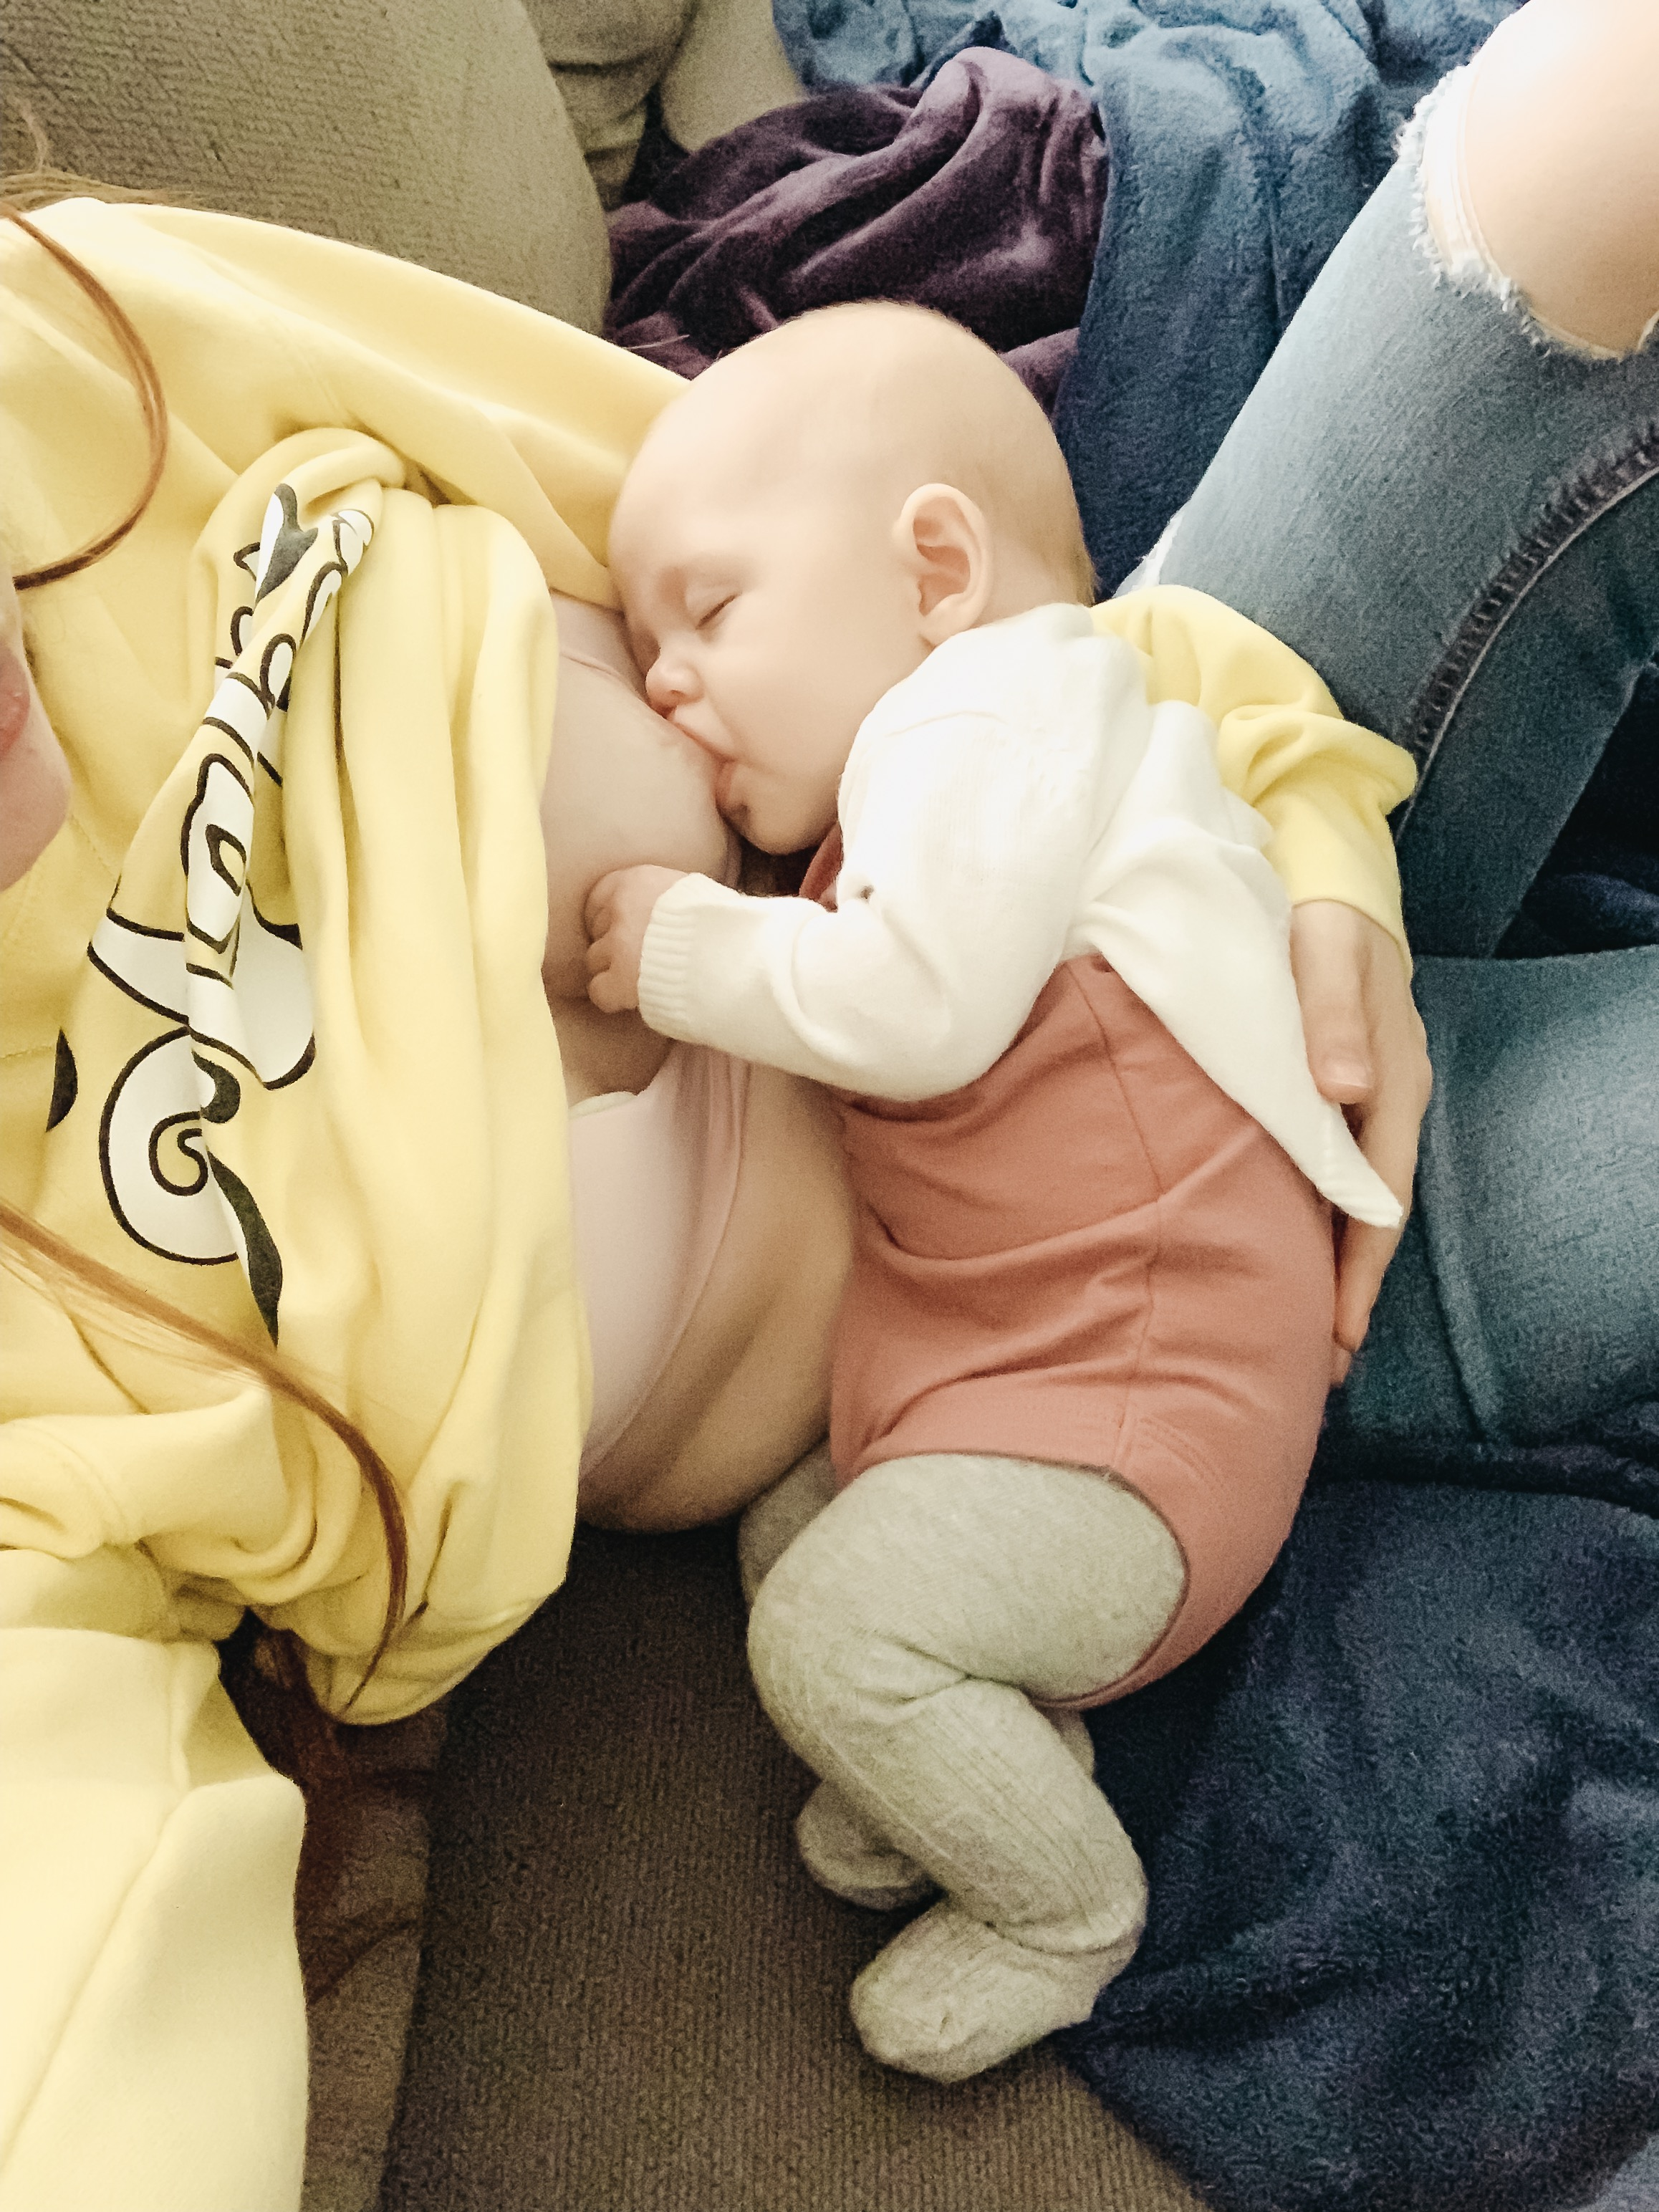 breastfeeding is hard it's okay to ask for help the little milk bar blog post for new and breastfeeding moms 1.jpeg